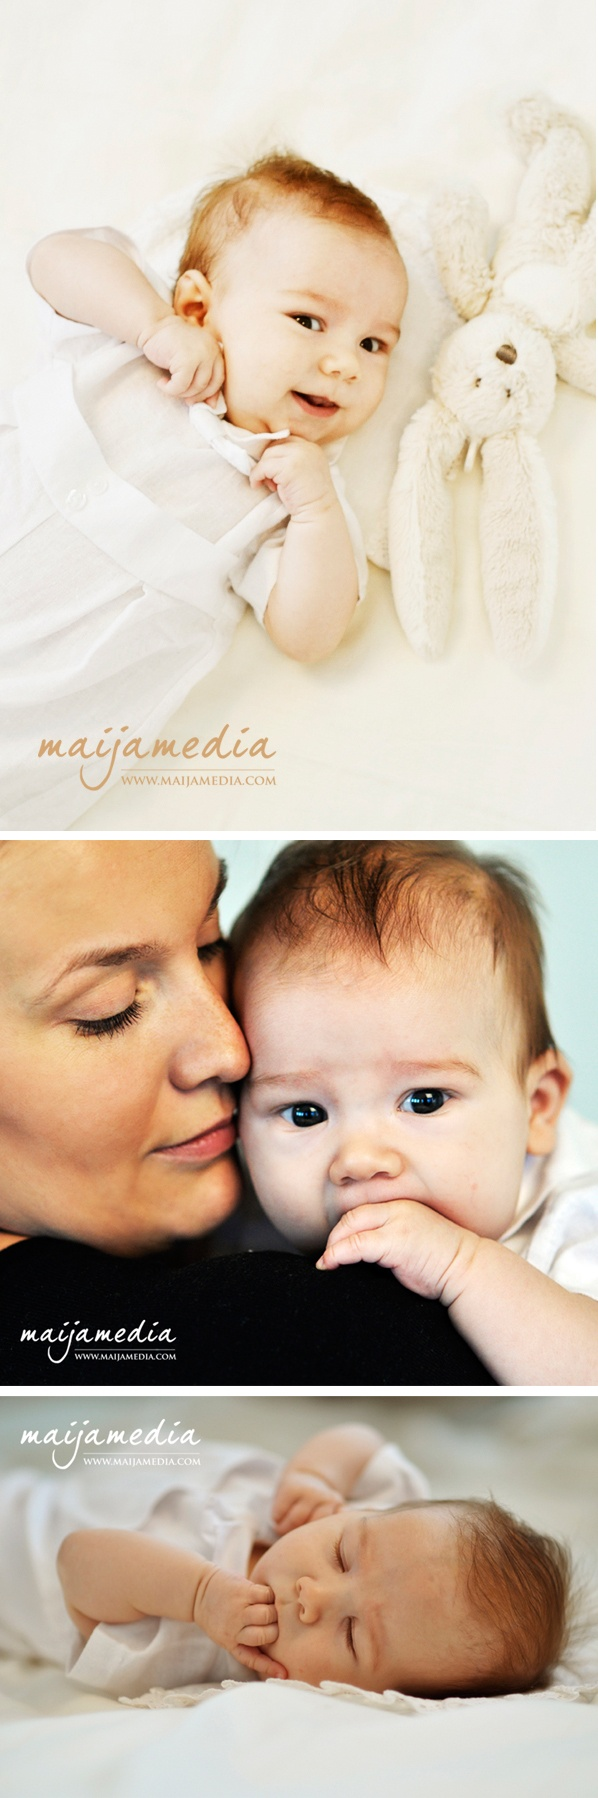 "Baby Photography by Maijamedia. Mikael 3 months. ""What can you do to promote world peace? Go home and love your family."" ― Mother Teresa - http://pinterest.com/maijamedia/photography-kids-family/"